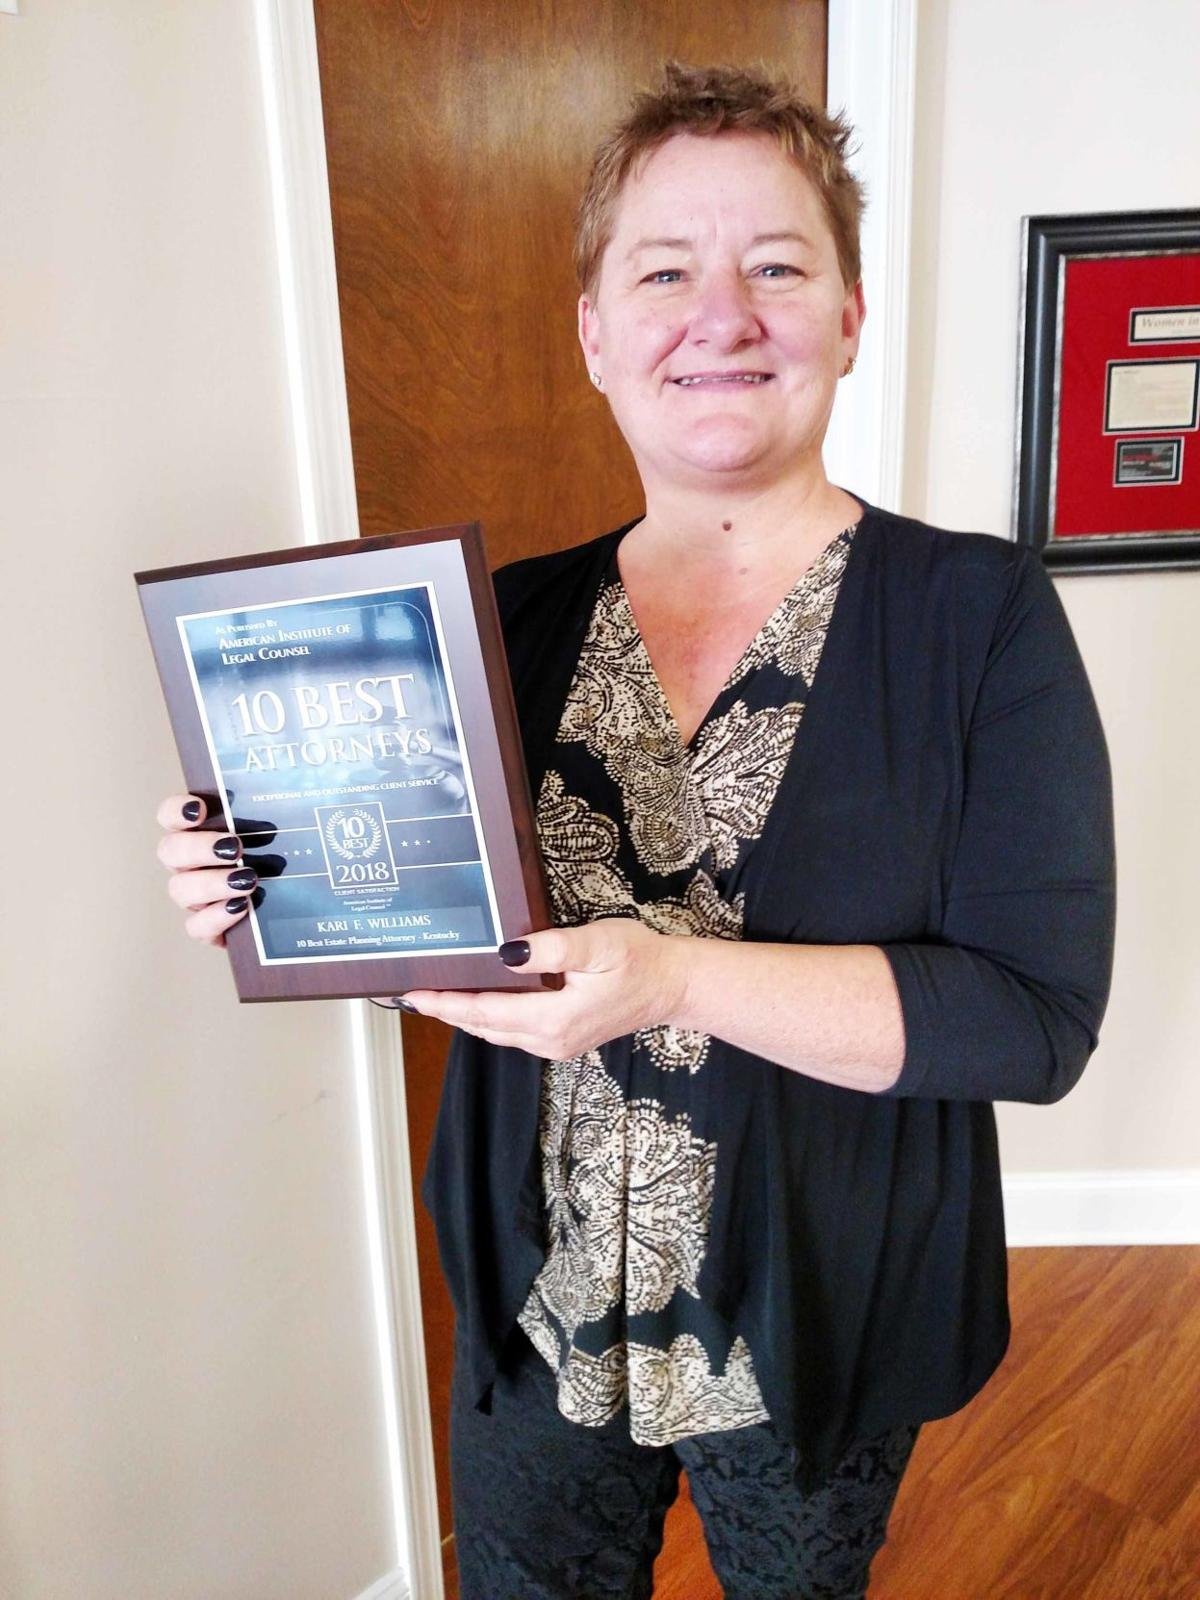 Business Spotlight: Williams named among best family planning attorneys in state